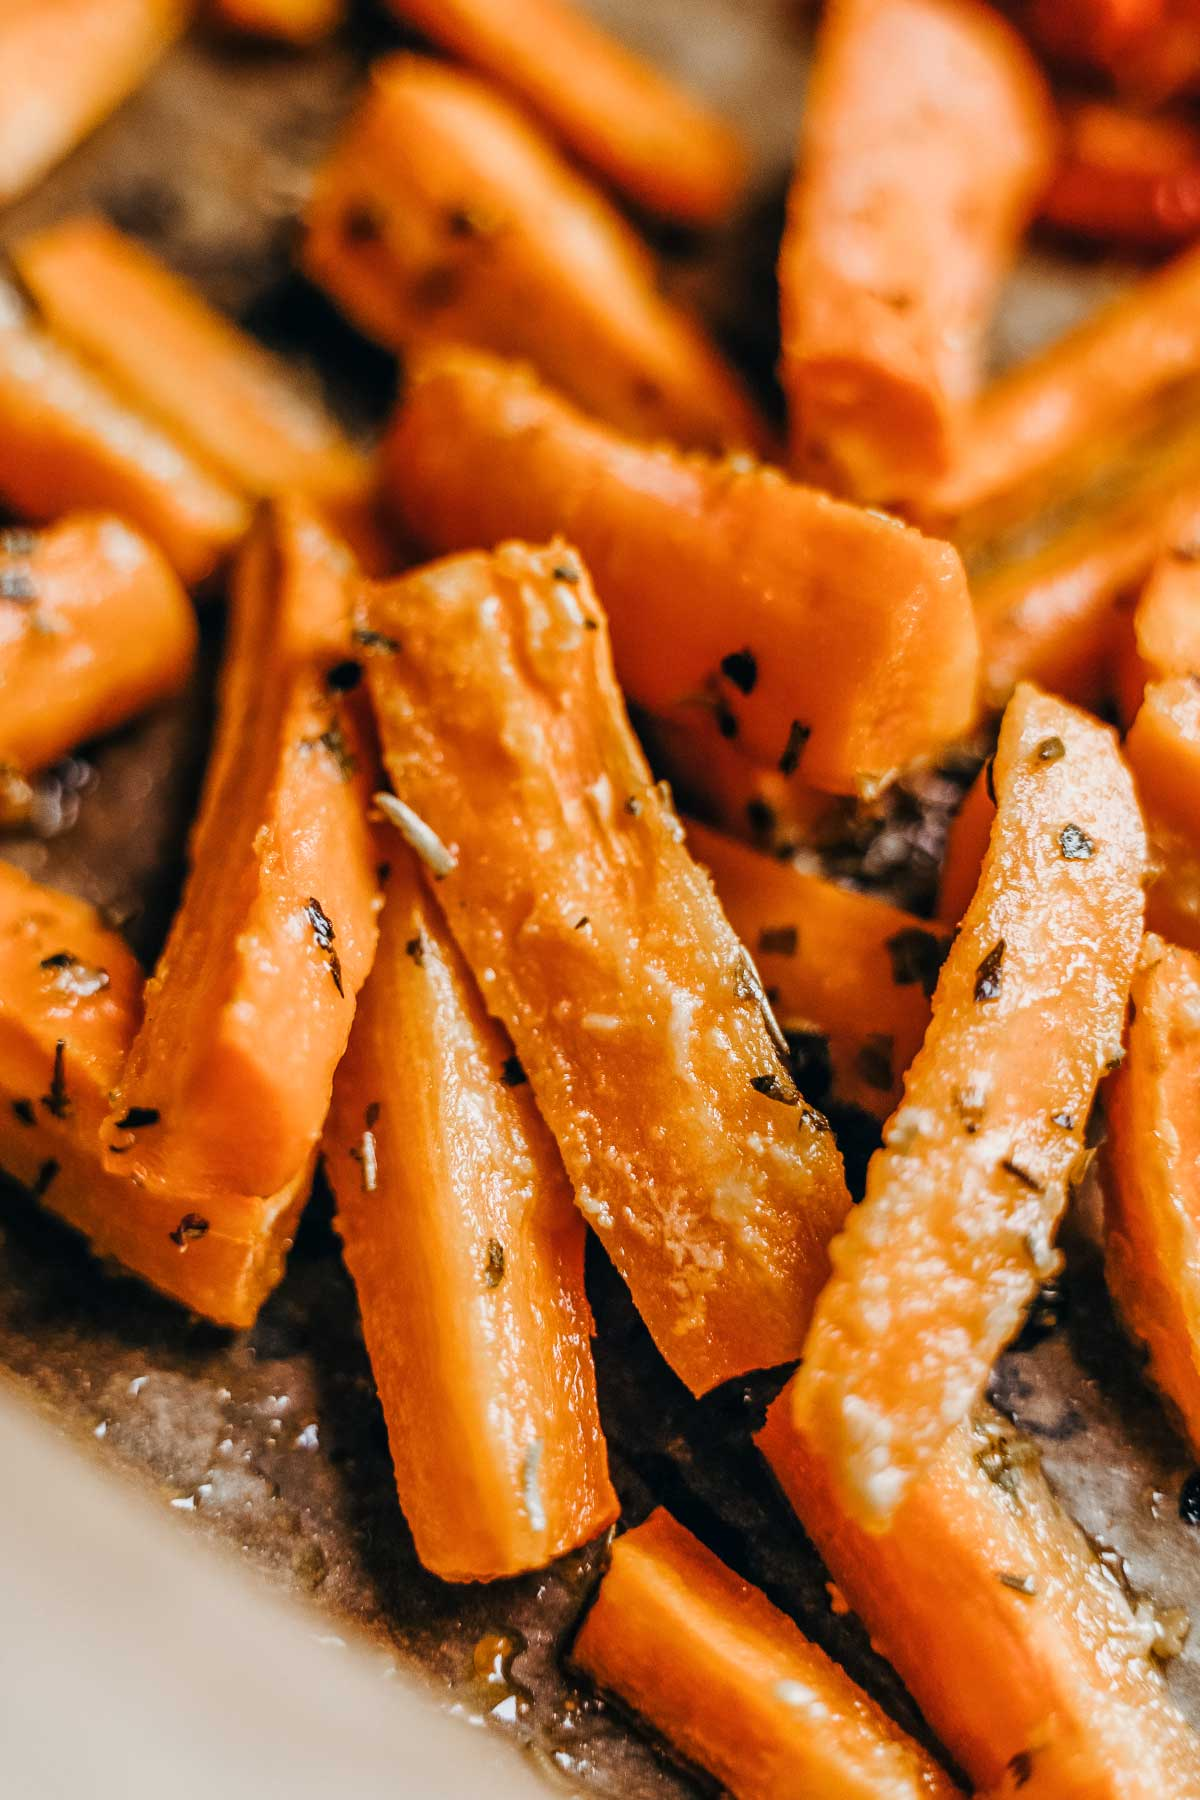 oven roasted carrots sticks on a baking sheet